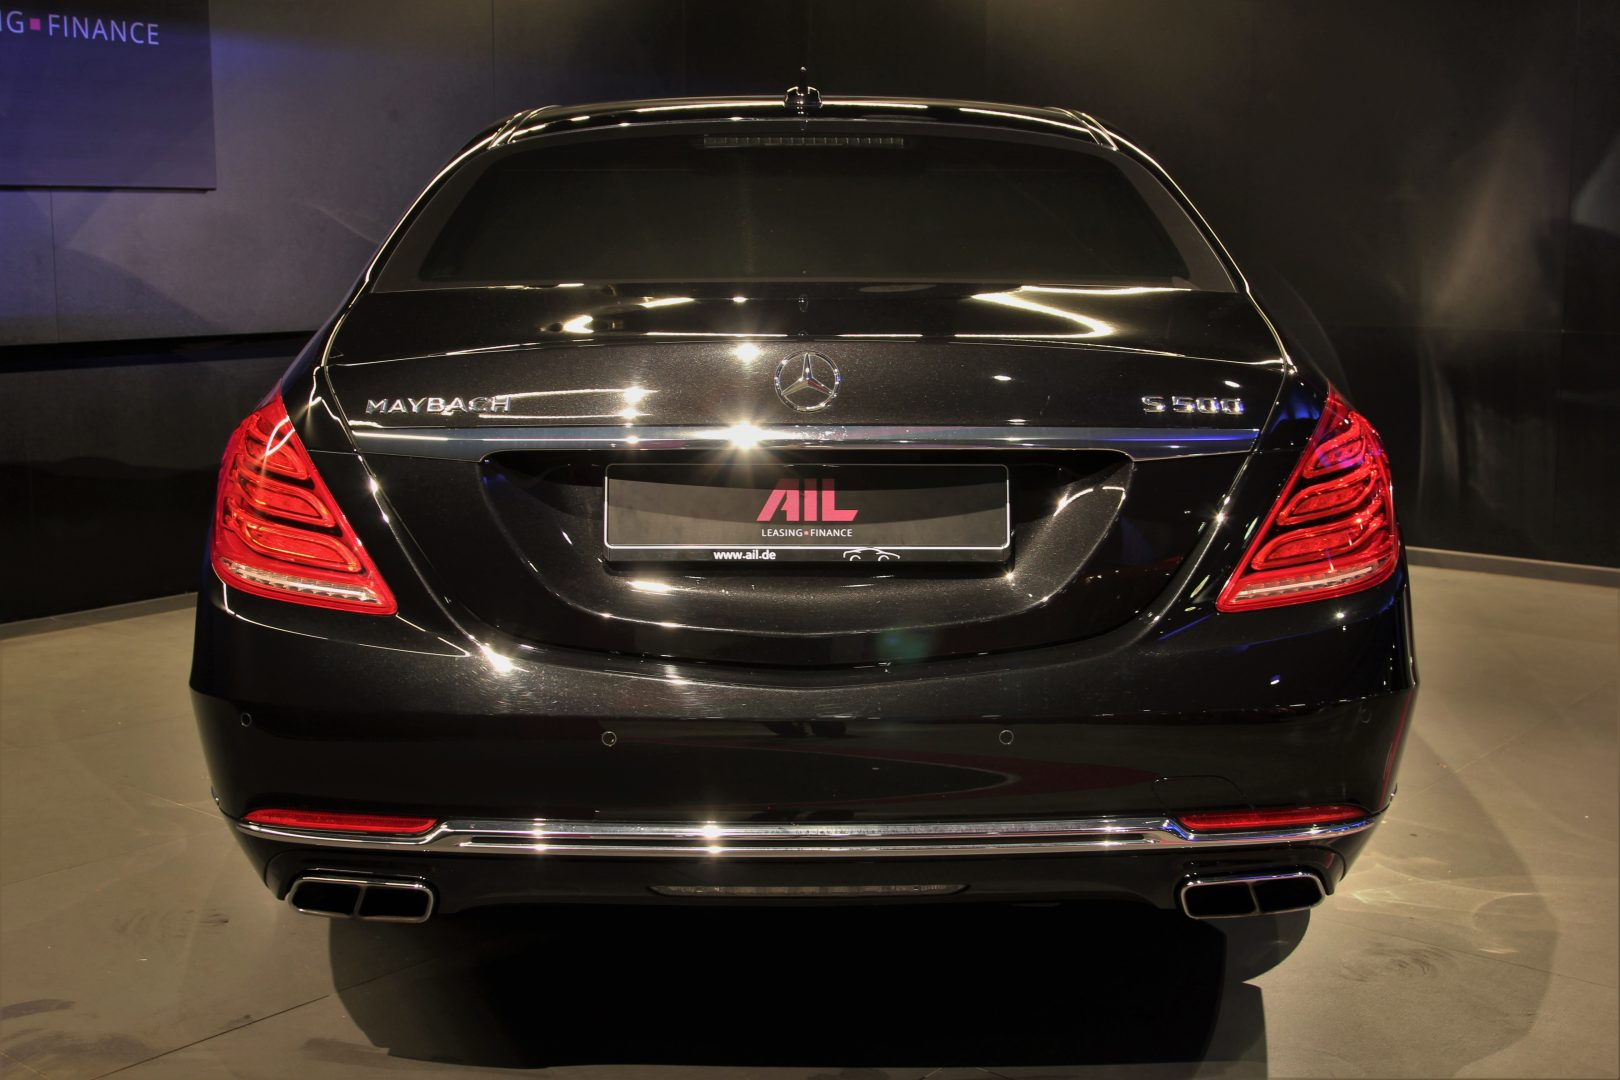 AIL Mercedes-Benz S 500 Maybach First-Class Fond RSE 11